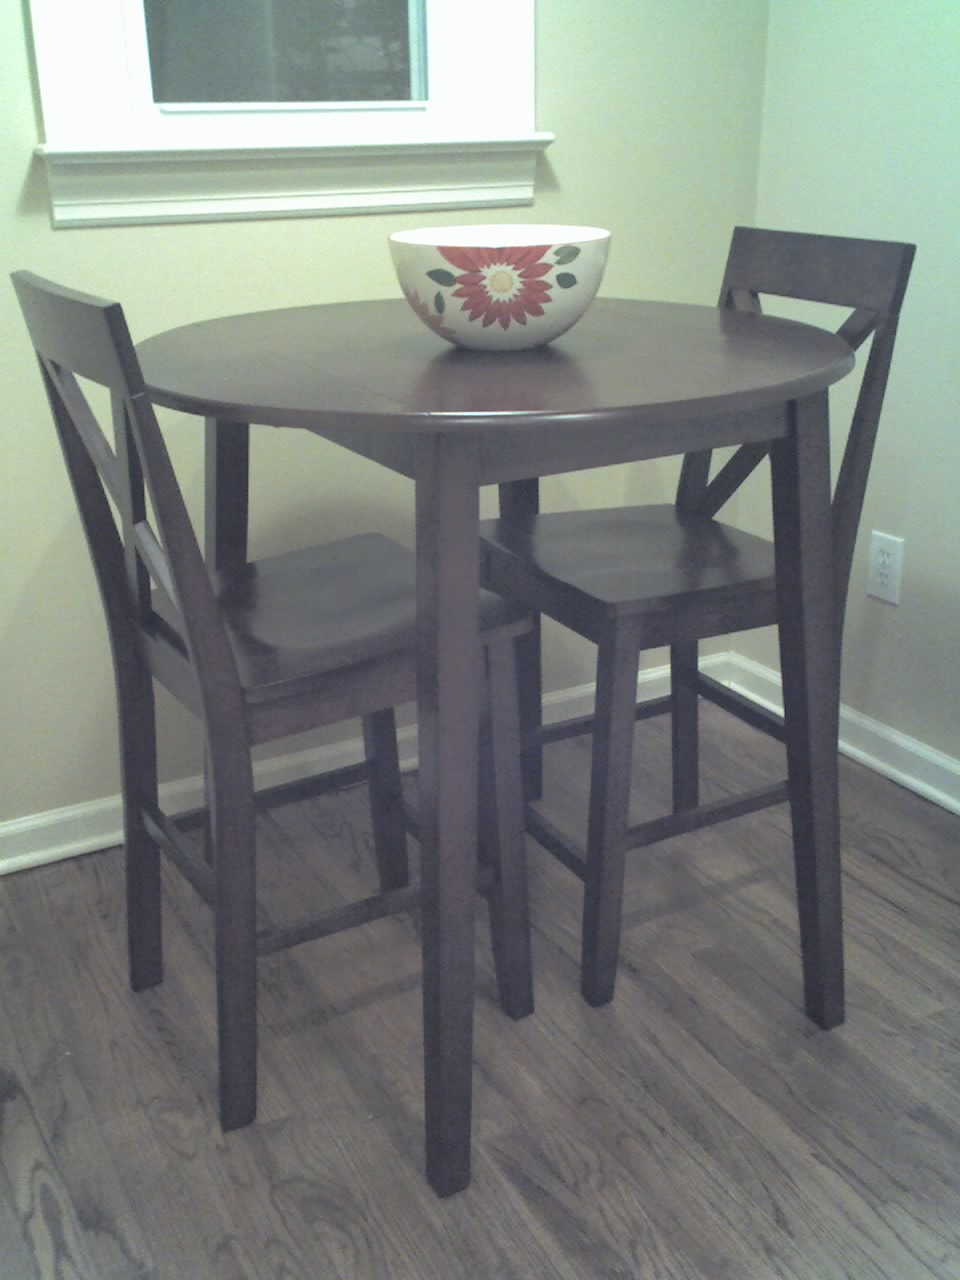 2 Chair Kitchen Table Set Amp Small Dining Table For 2